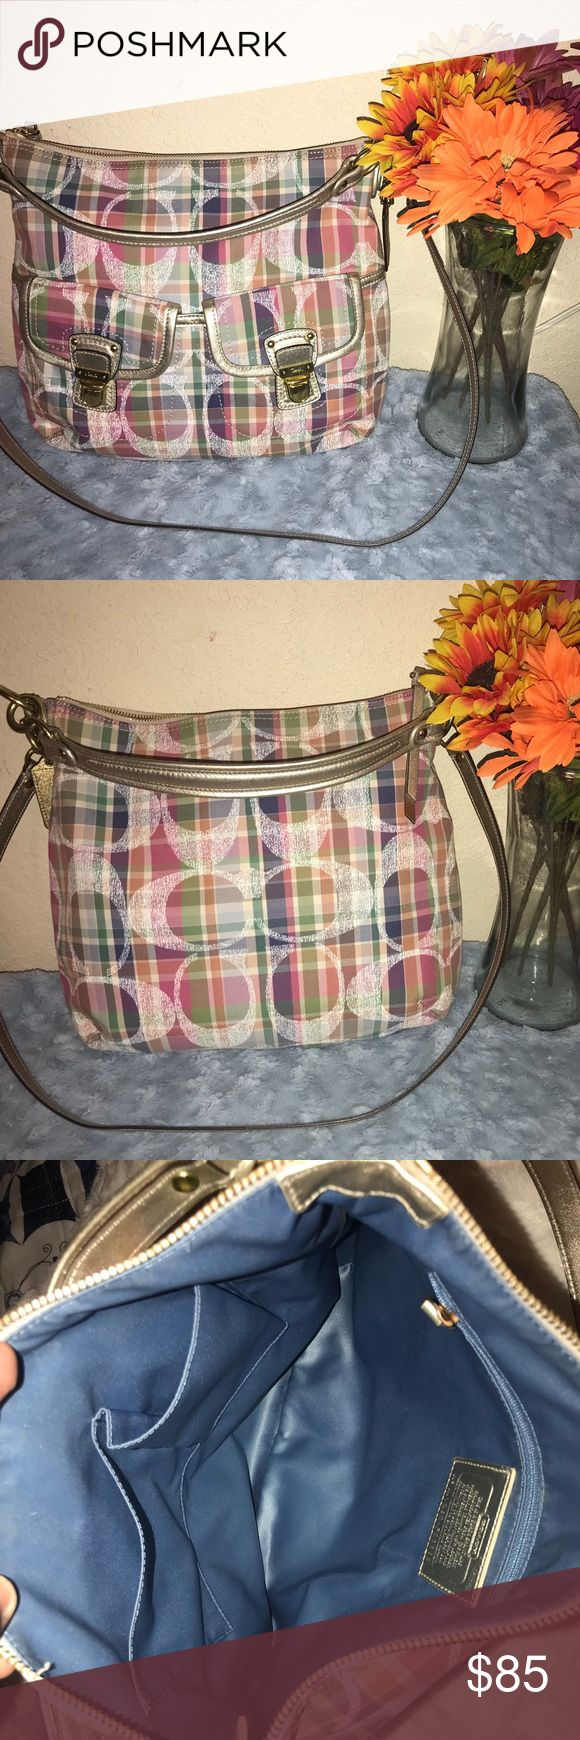 Final Price Reduction Coach Poppy Madras Hobo Great conditions inside and out please view all pictures and ask any questions Coach Bags Hobos